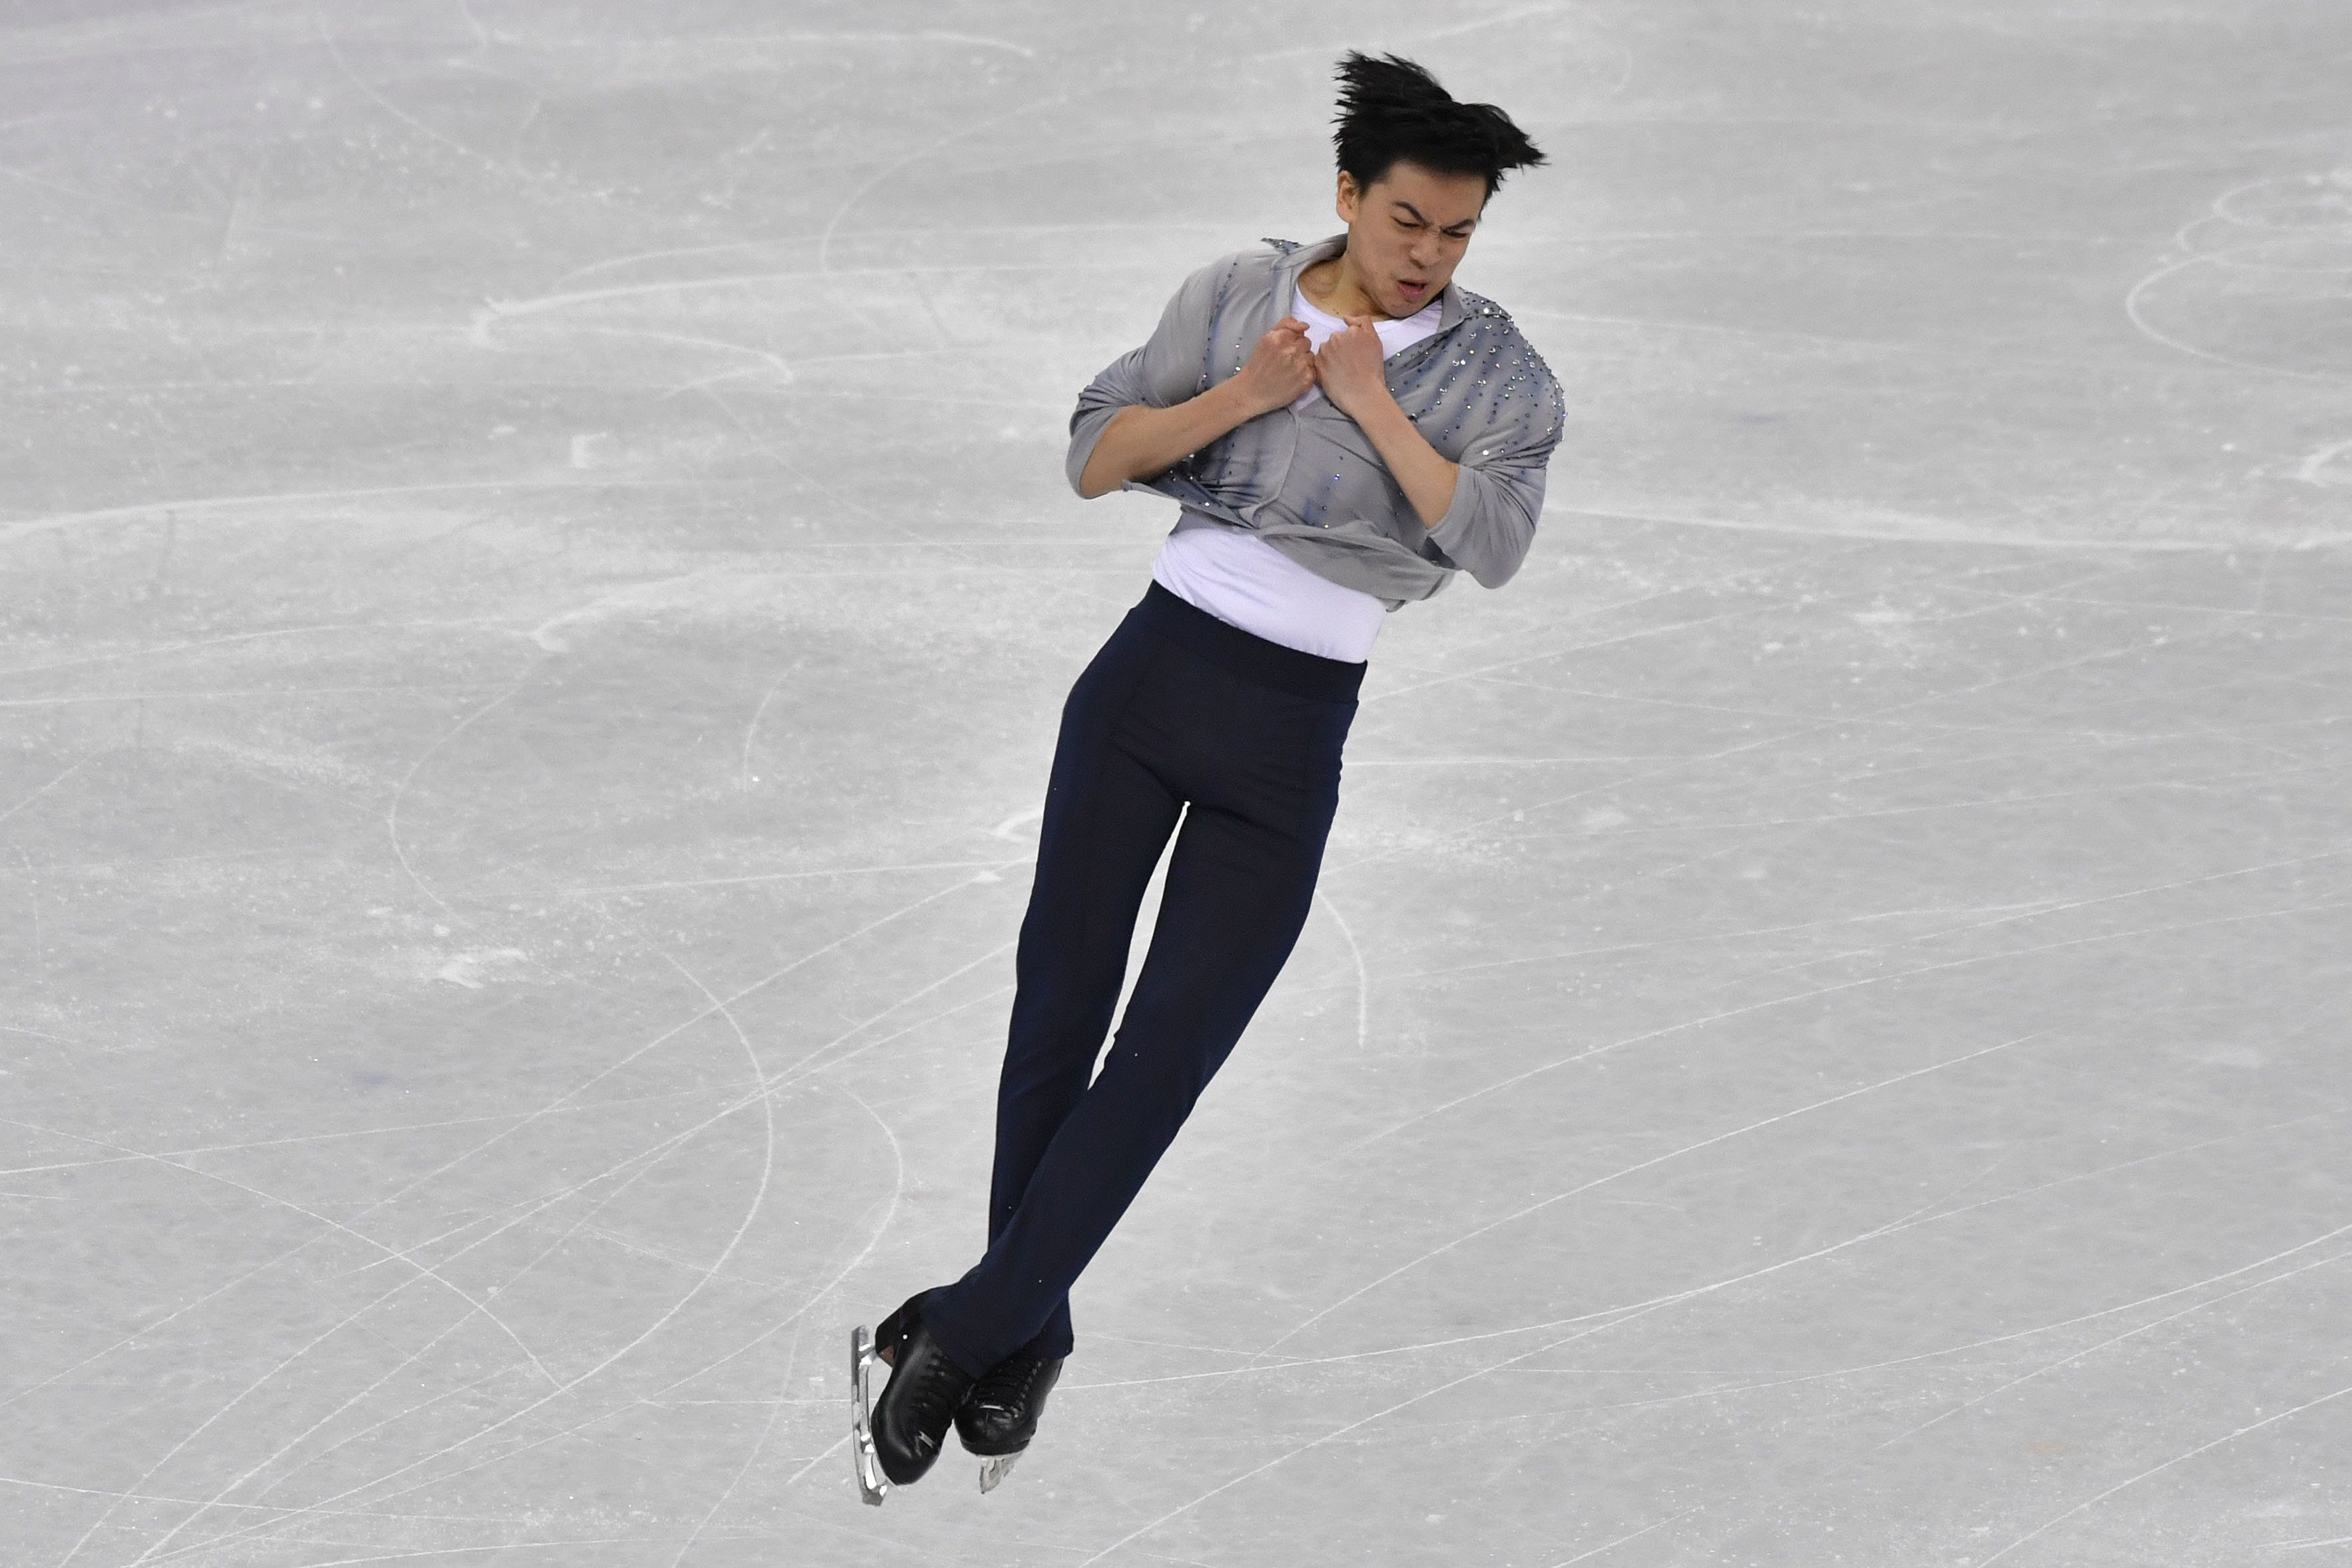 USA's Vincent Zhou competes in the men's single skating short program of the figure skating event during the Pyeongchang 2018 Winter Olympic Games at the Gangneung Ice Arena in Gangneung on February 16, 2018. / AFP PHOTO / Ed JONES        (Photo credit should read ED JONES/AFP/Getty Images)